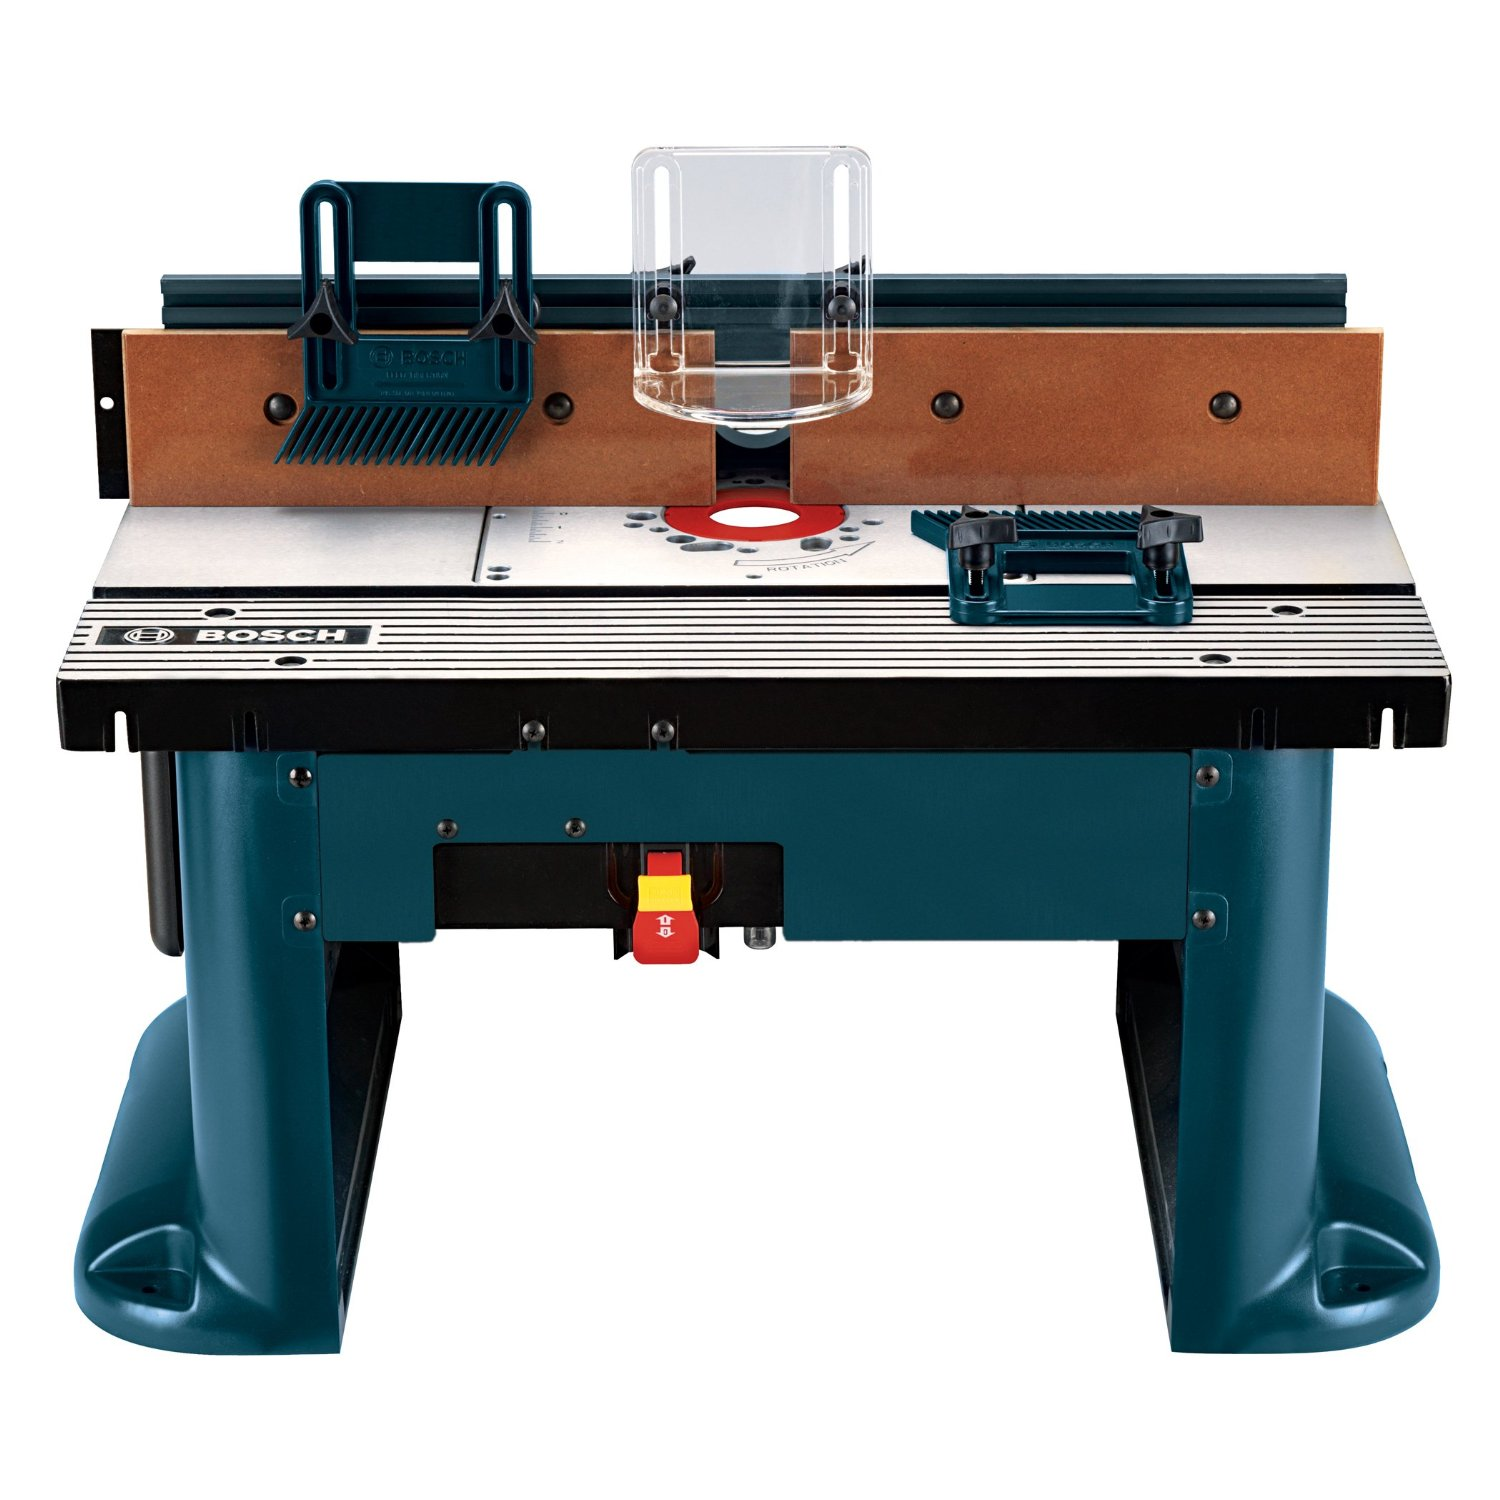 save 62 on a bosch router table at 135 today